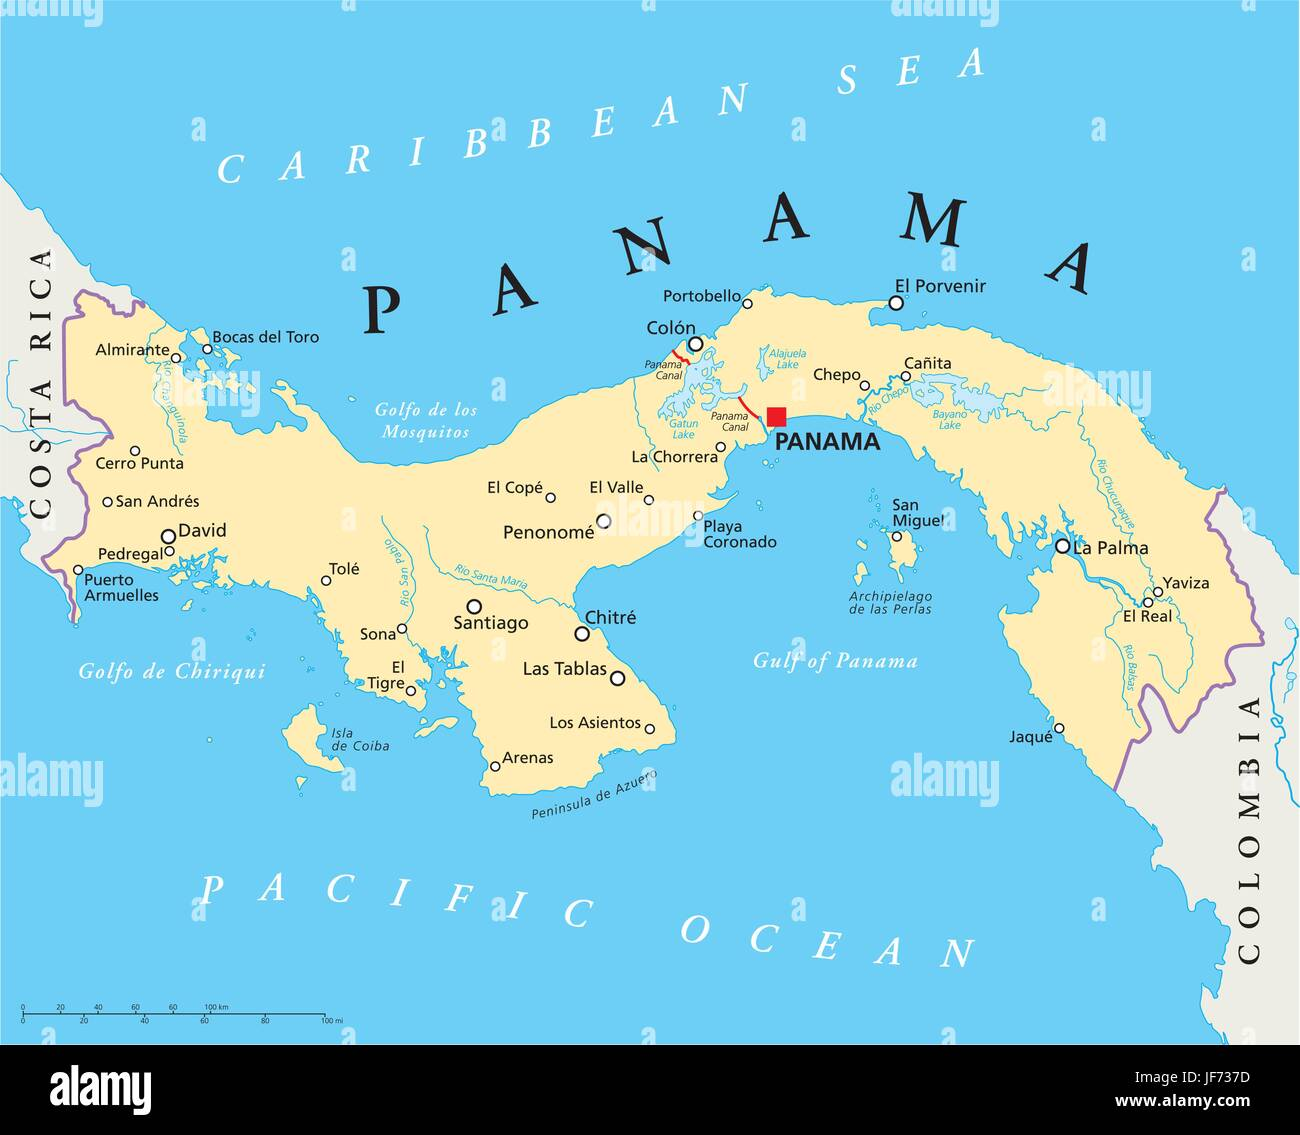 Panama Canal On World Map route, panama, canal, map, shipping, atlas, map of the world